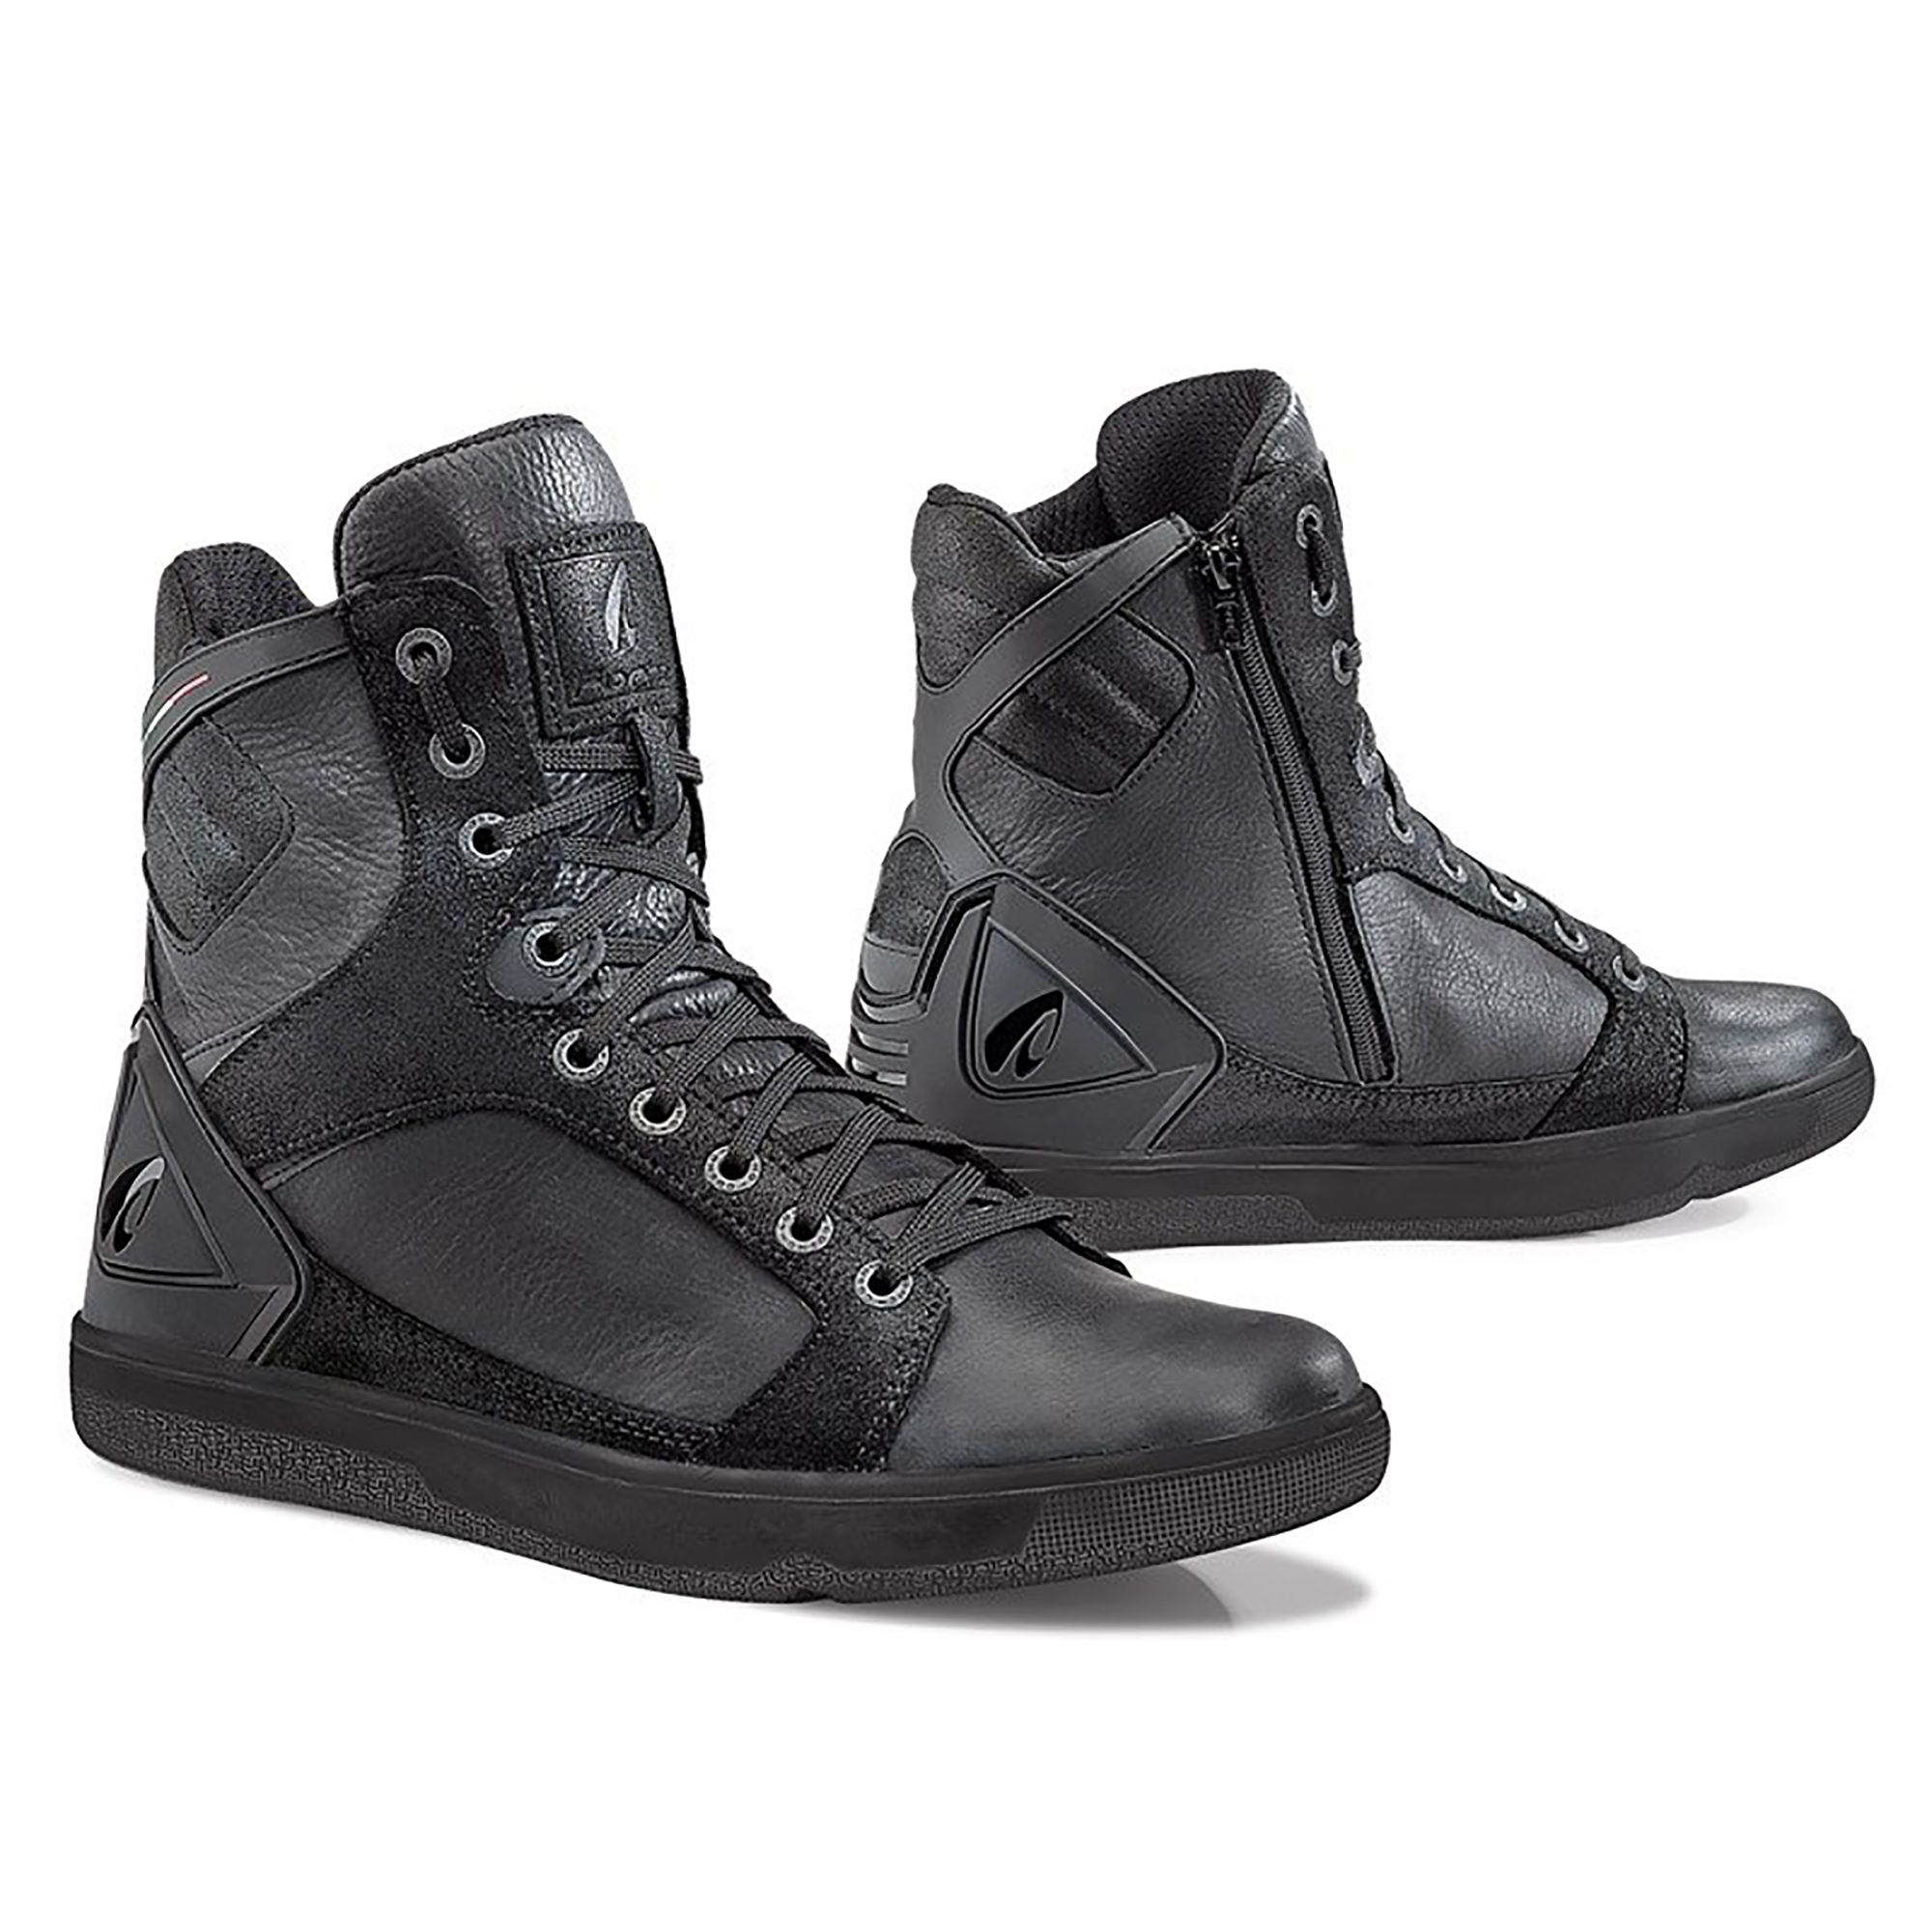 Mid length Motorcycle Riding boots//Race Boots//LEATHER BOOTS WITH LACE by Ride eazy 9